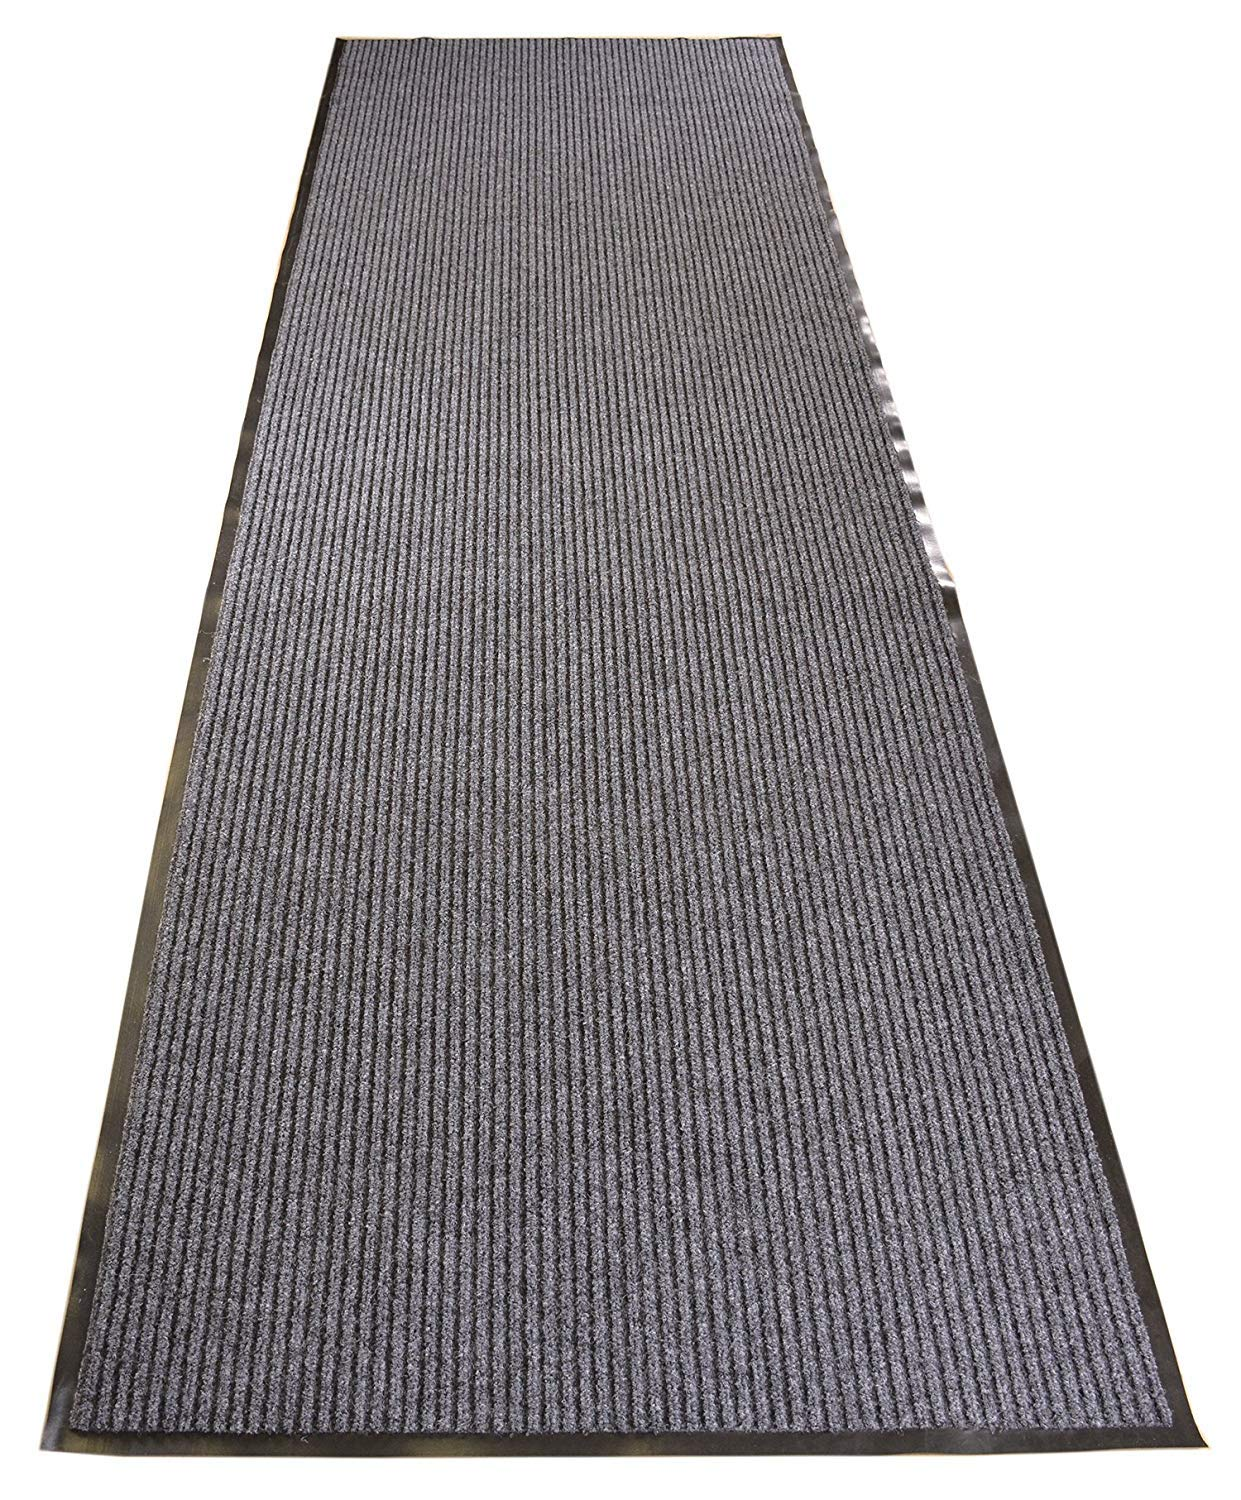 RugStylesOnline Tough Entry Mat Indoor Outdoor Entrance Mat and Hallway Runner Tough Entry Collection Slip Skid Resistant PVC Backing Anti Bacterial Commercial Grade (Grey, 3' x 12')